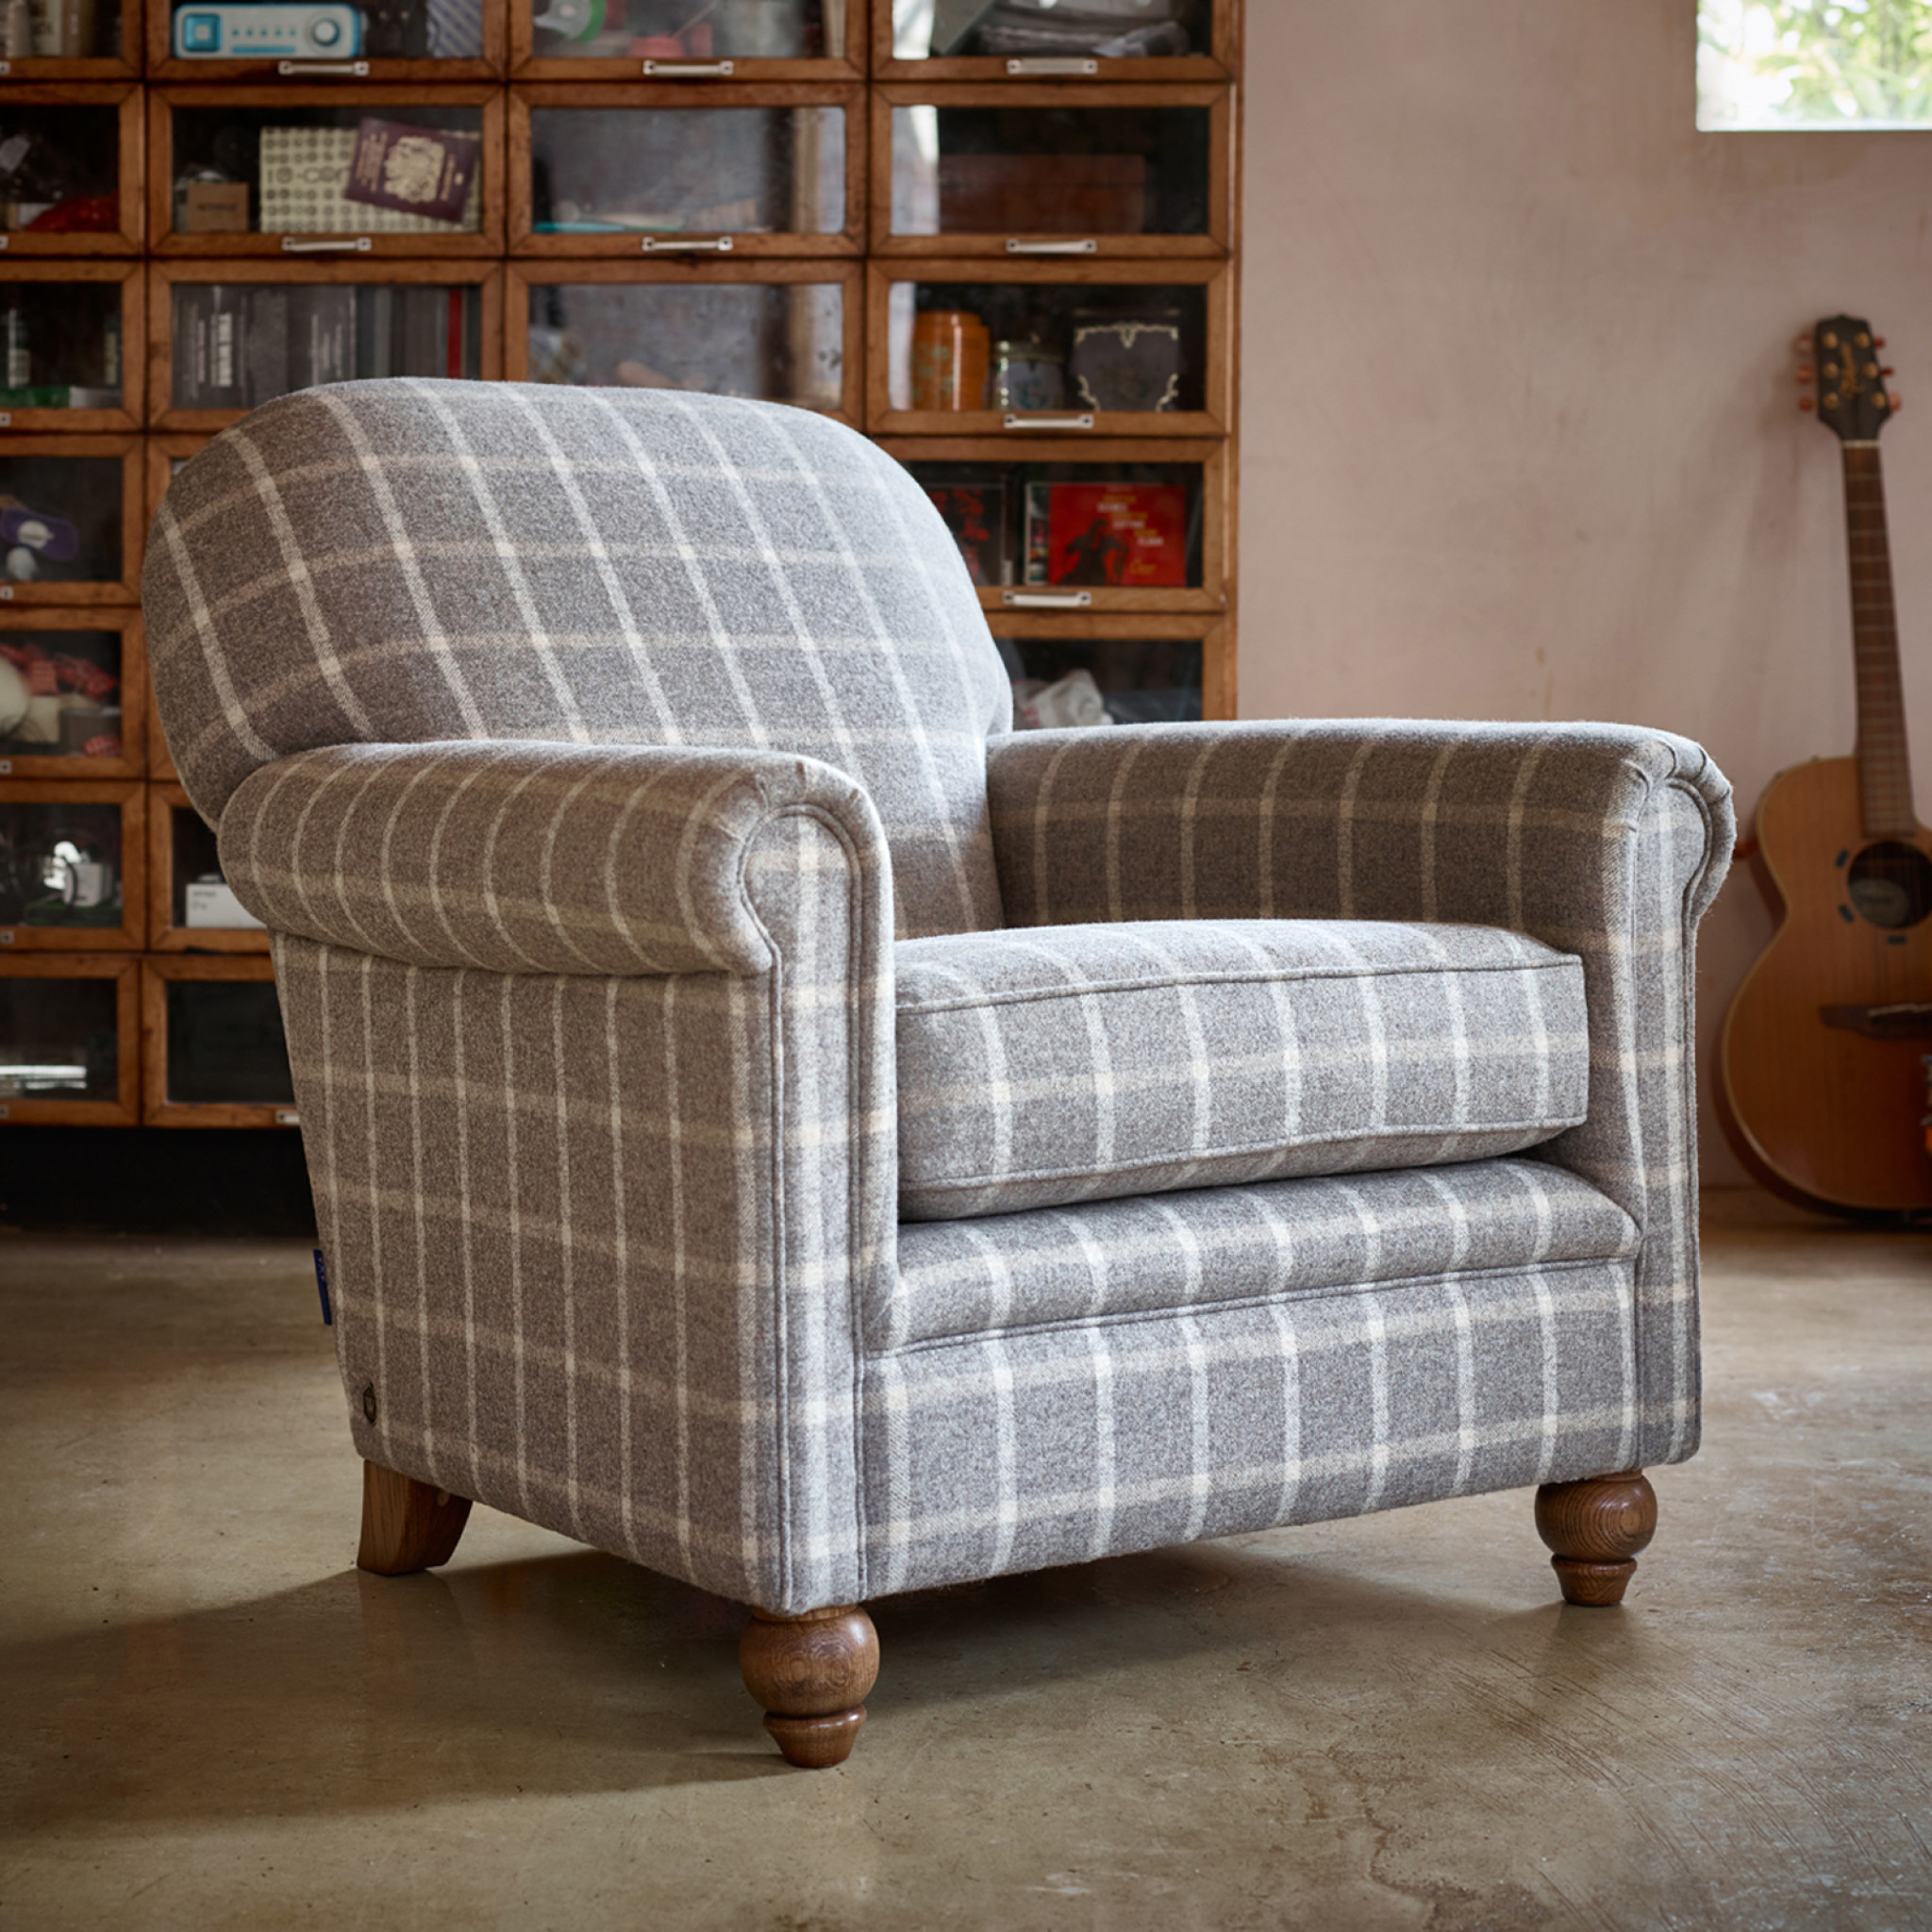 Ripley Armchair RIP140 Moon Fabrics Wood Bros